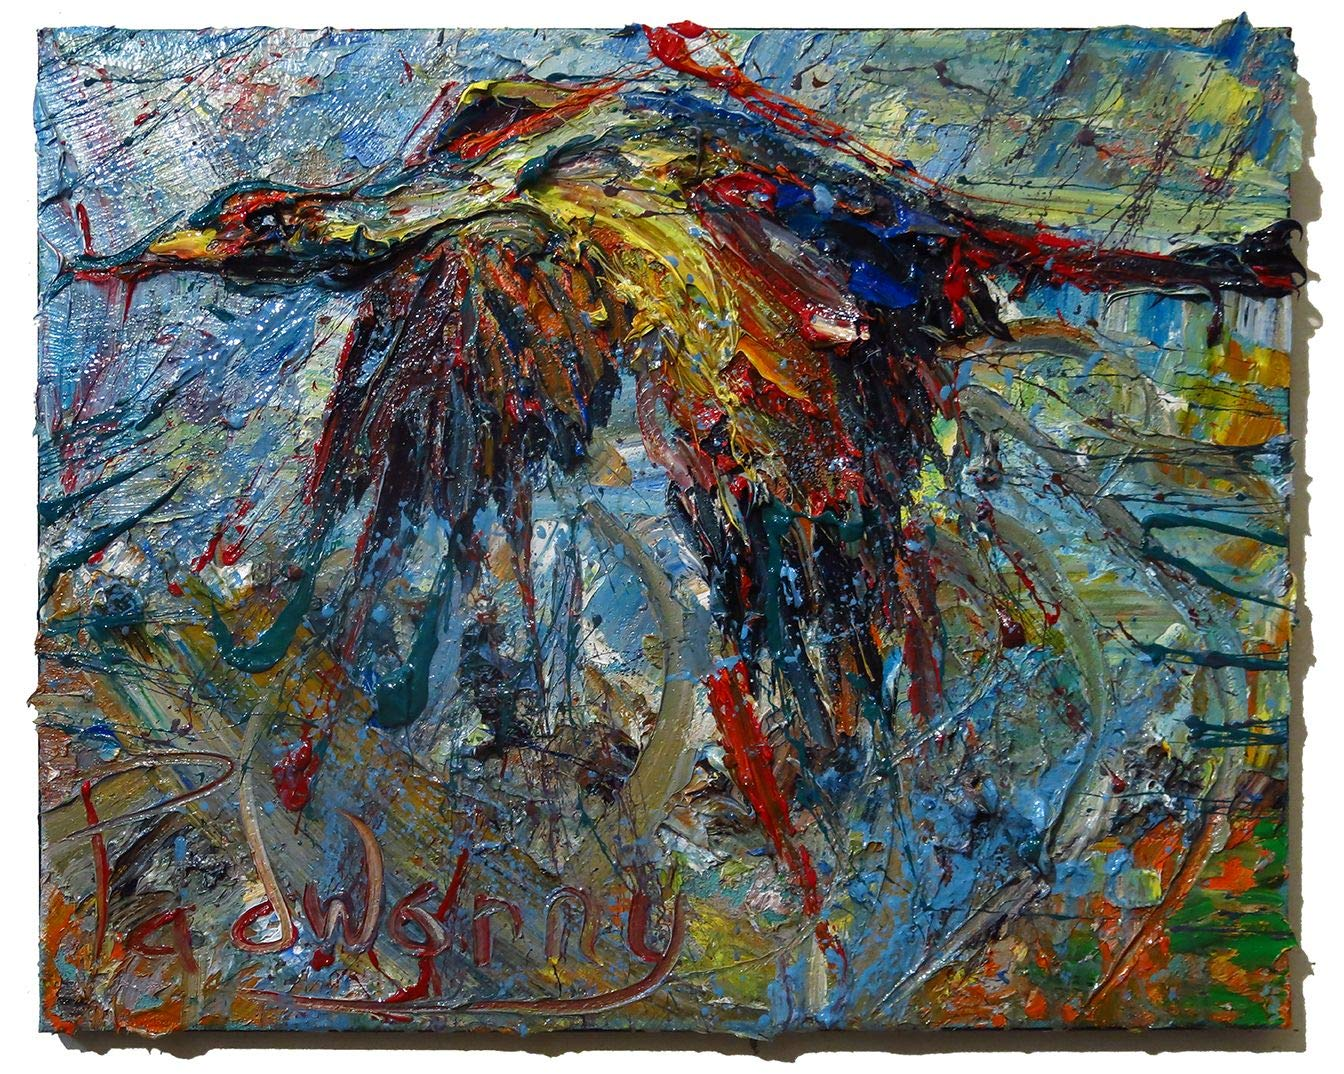 UNTITLED m1097 - Original oil painting bird fly by